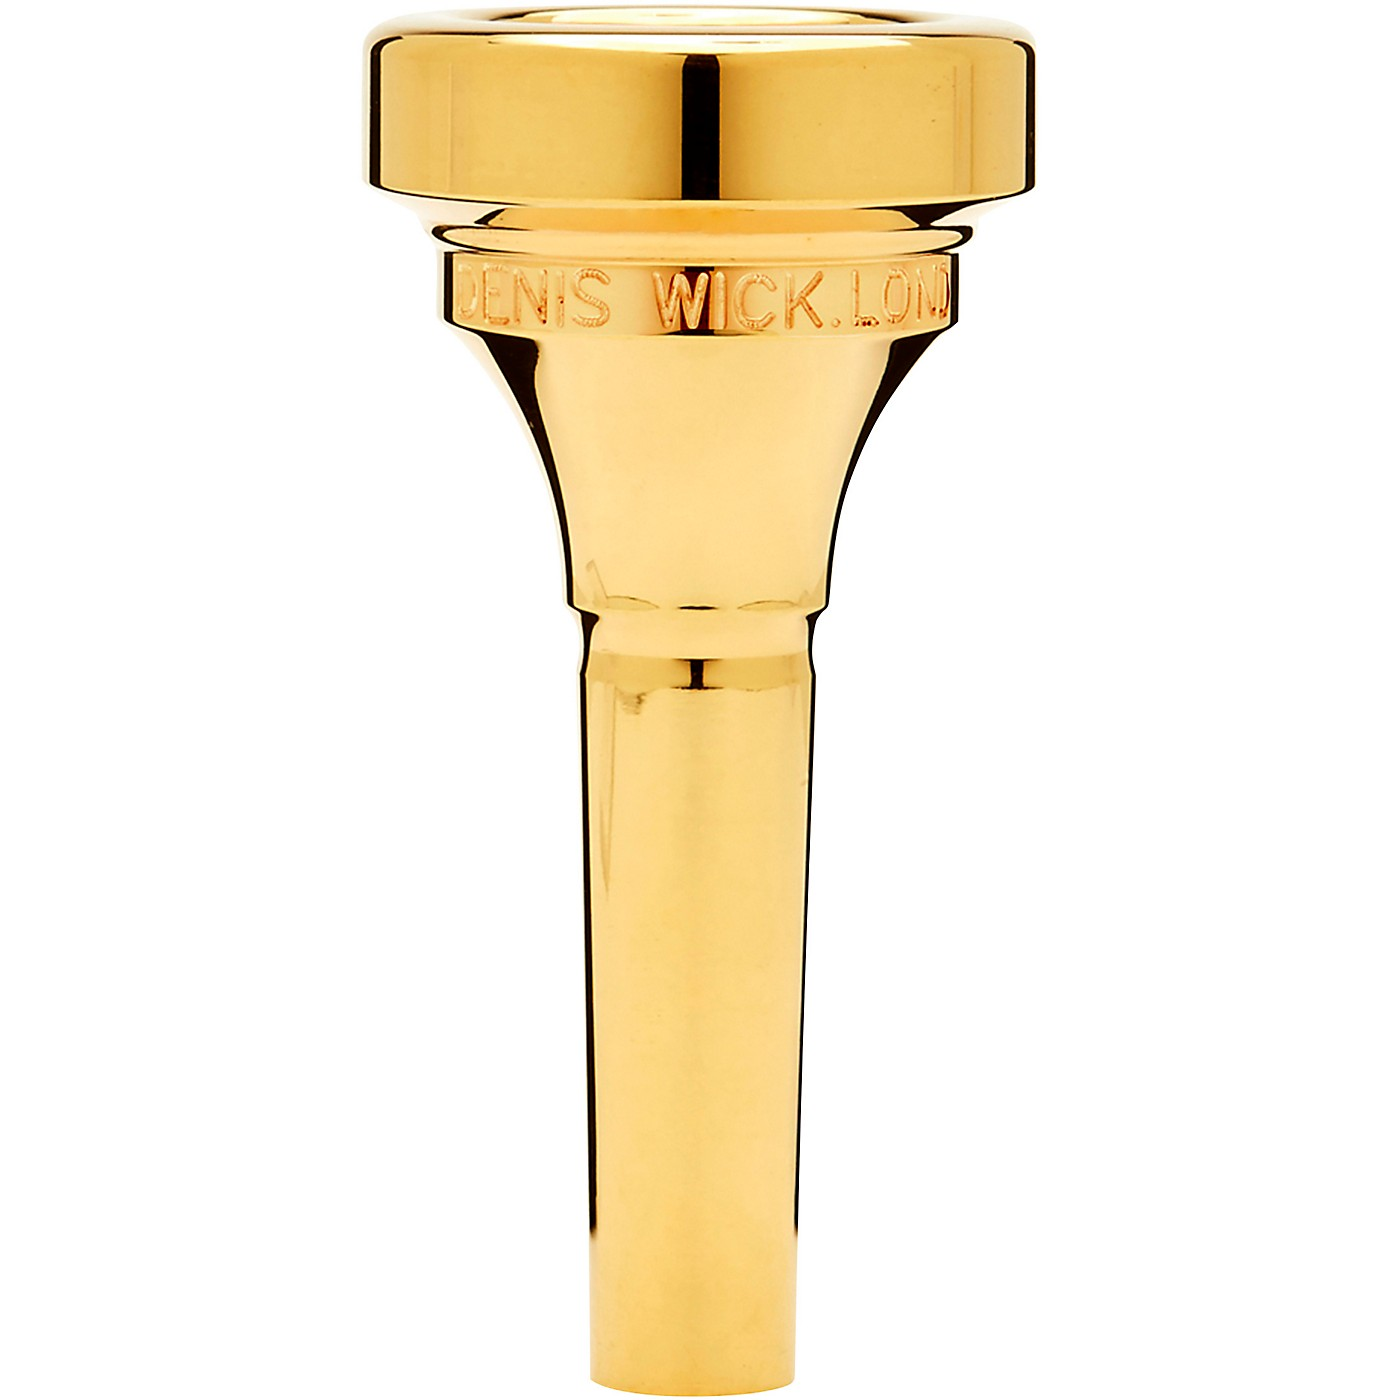 Denis Wick DW4880 Classic Series Trombone Mouthpiece in Gold thumbnail